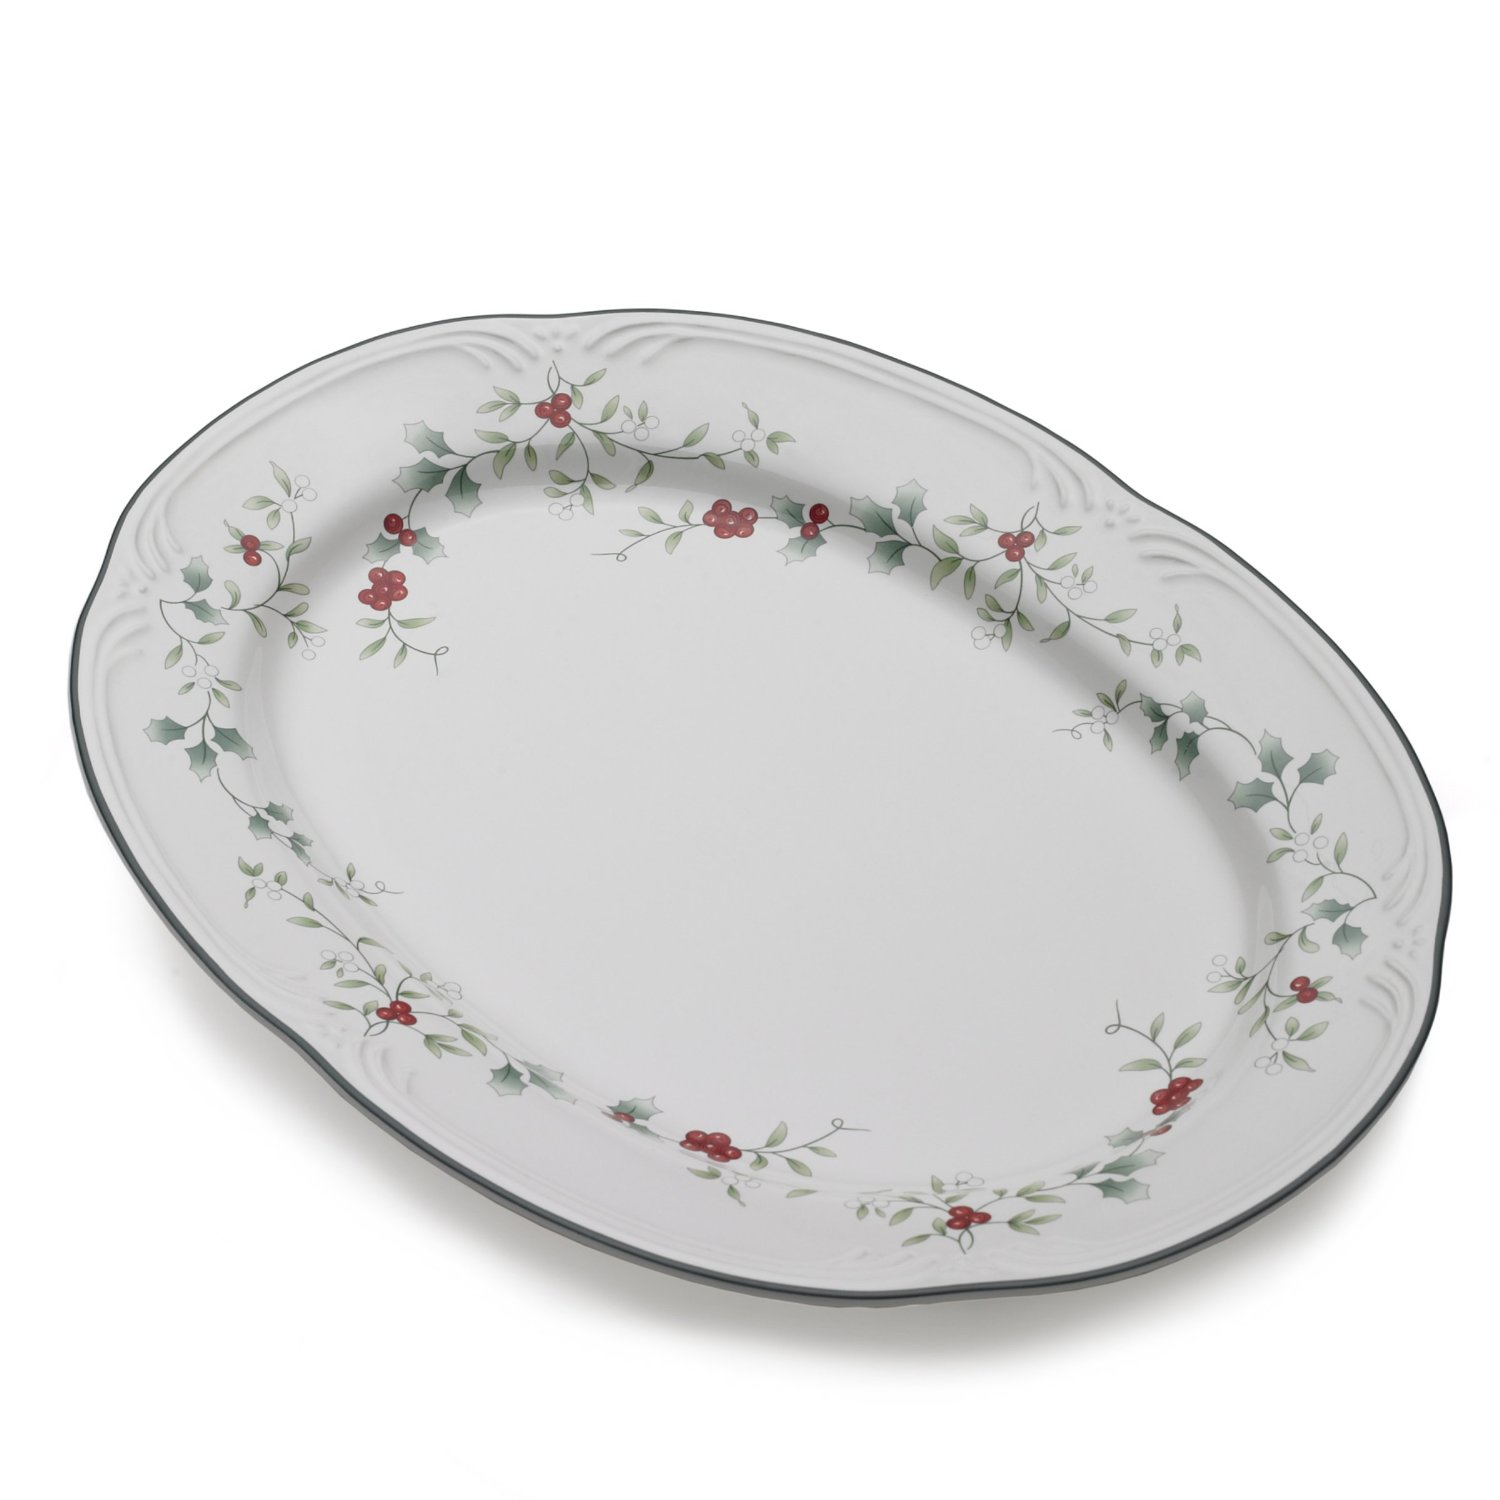 awesome Pfaltzgraff Winterberry Oval Vegetable Bowl Open for serveware ideas